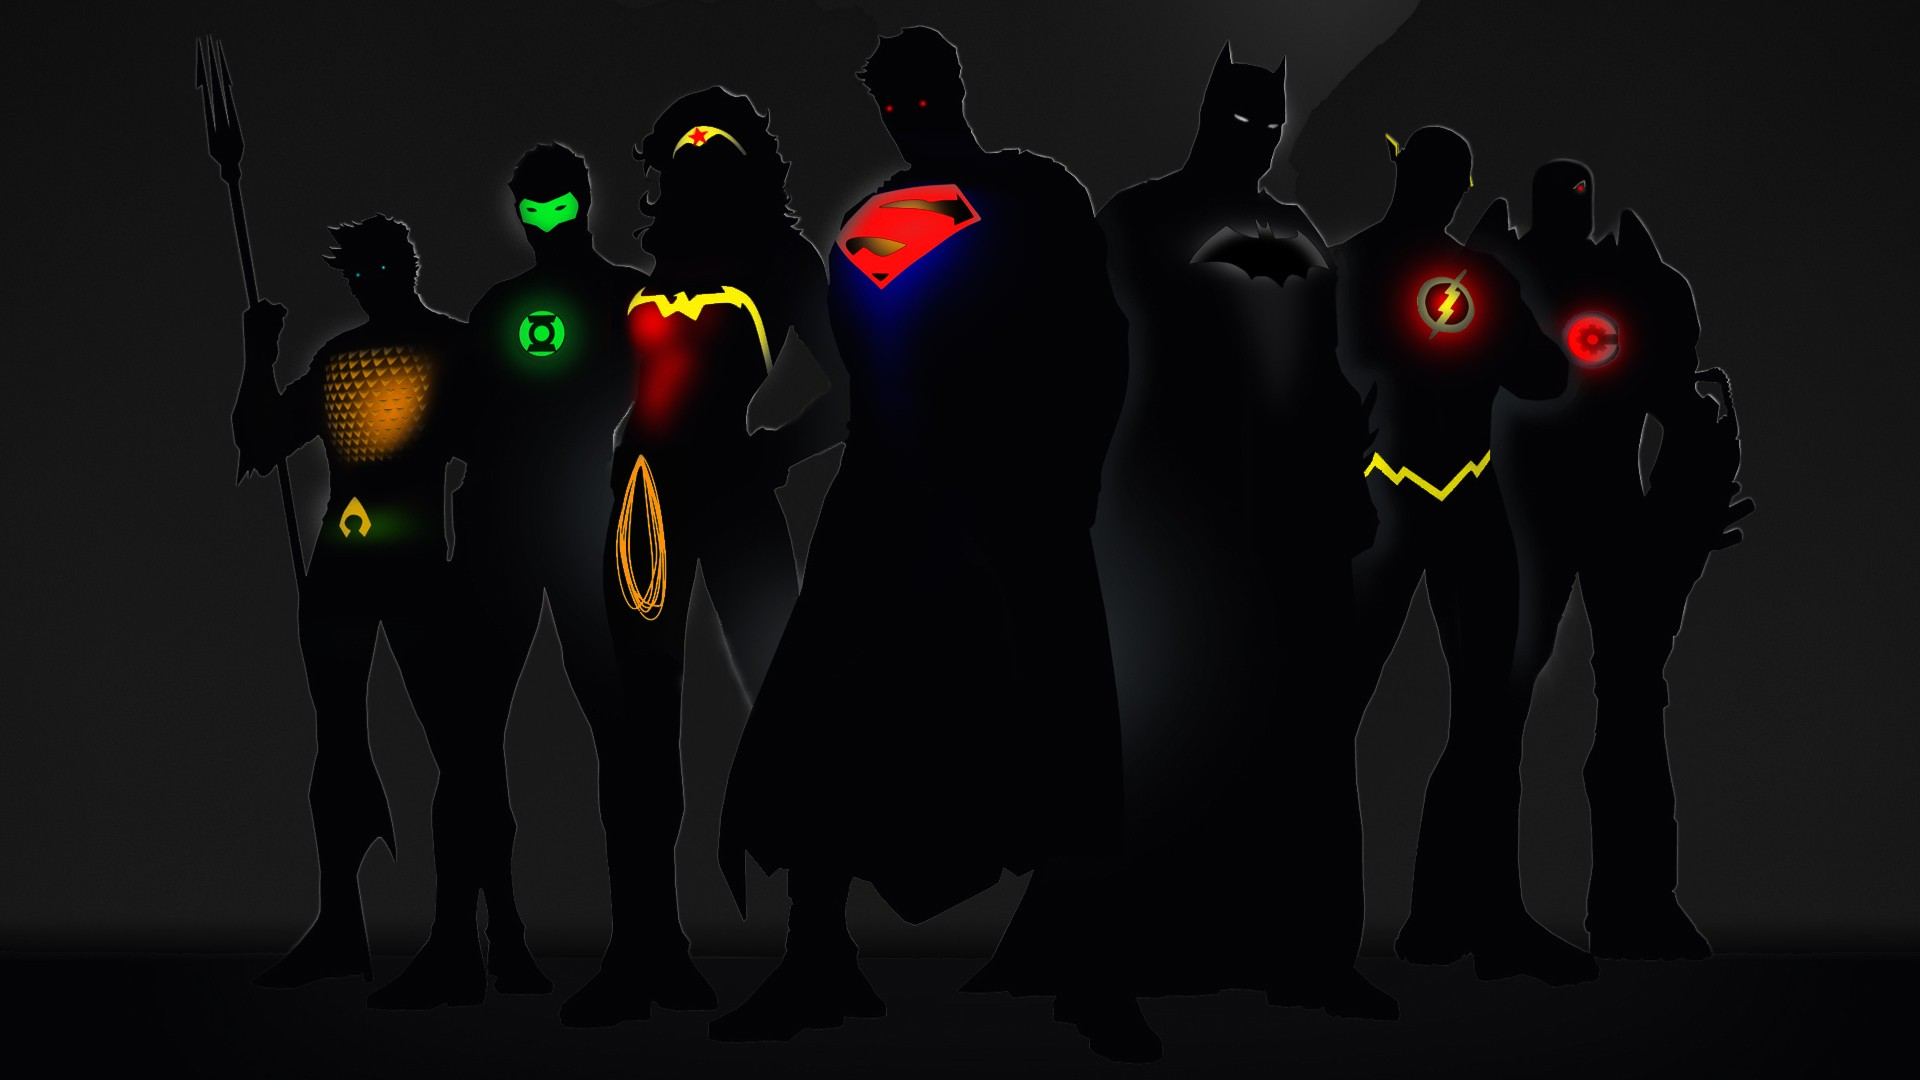 Green Lantern Wallpaper 1920x1080 Green Lantern Batman DC Comics 1920x1080